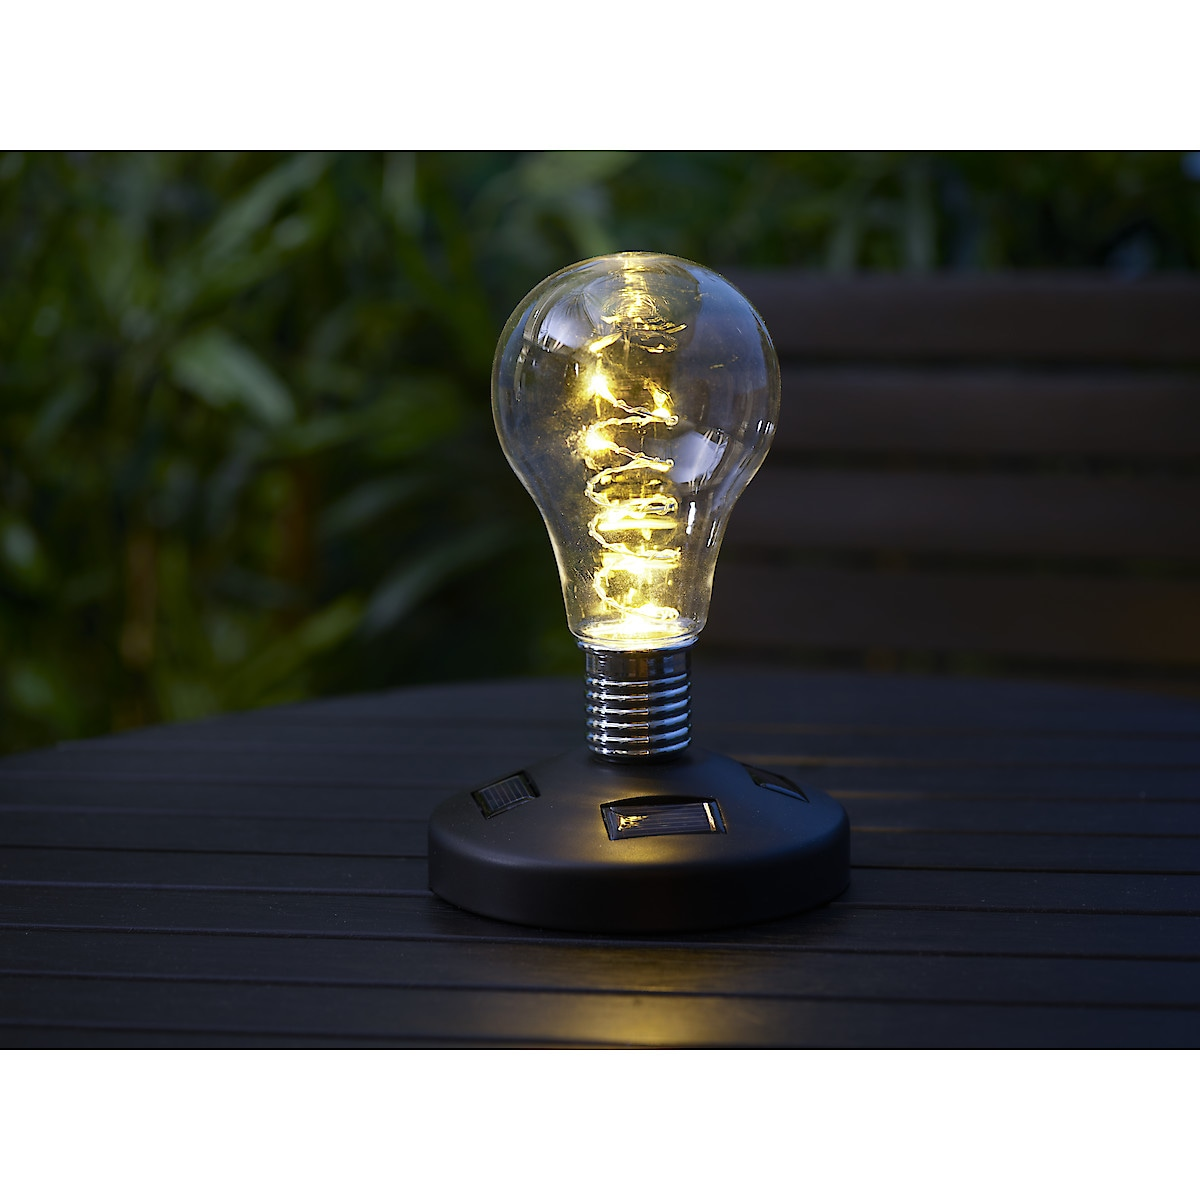 Solcellslampa Bulb